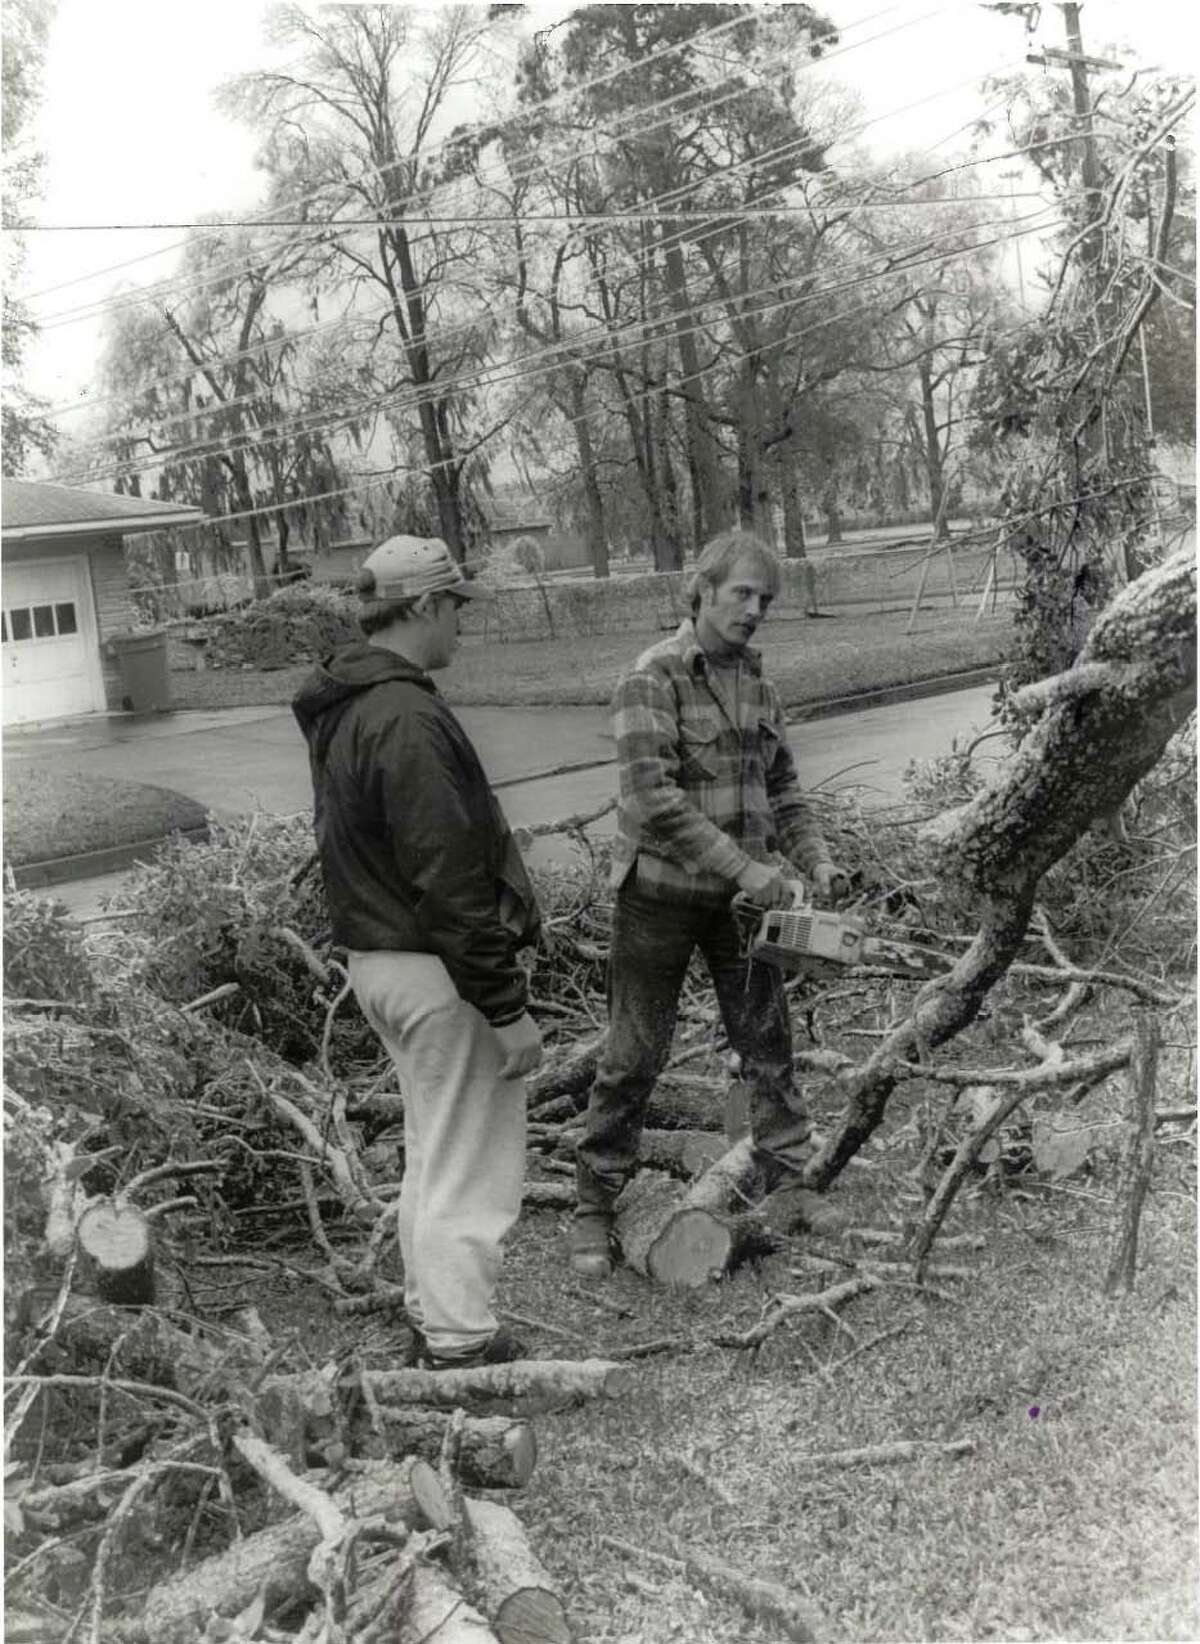 Jason Lisenby, left, and Jimmie Dyson, co-owner of Goodwin's Tree Service, cut downed branches at 19th and North Streets.